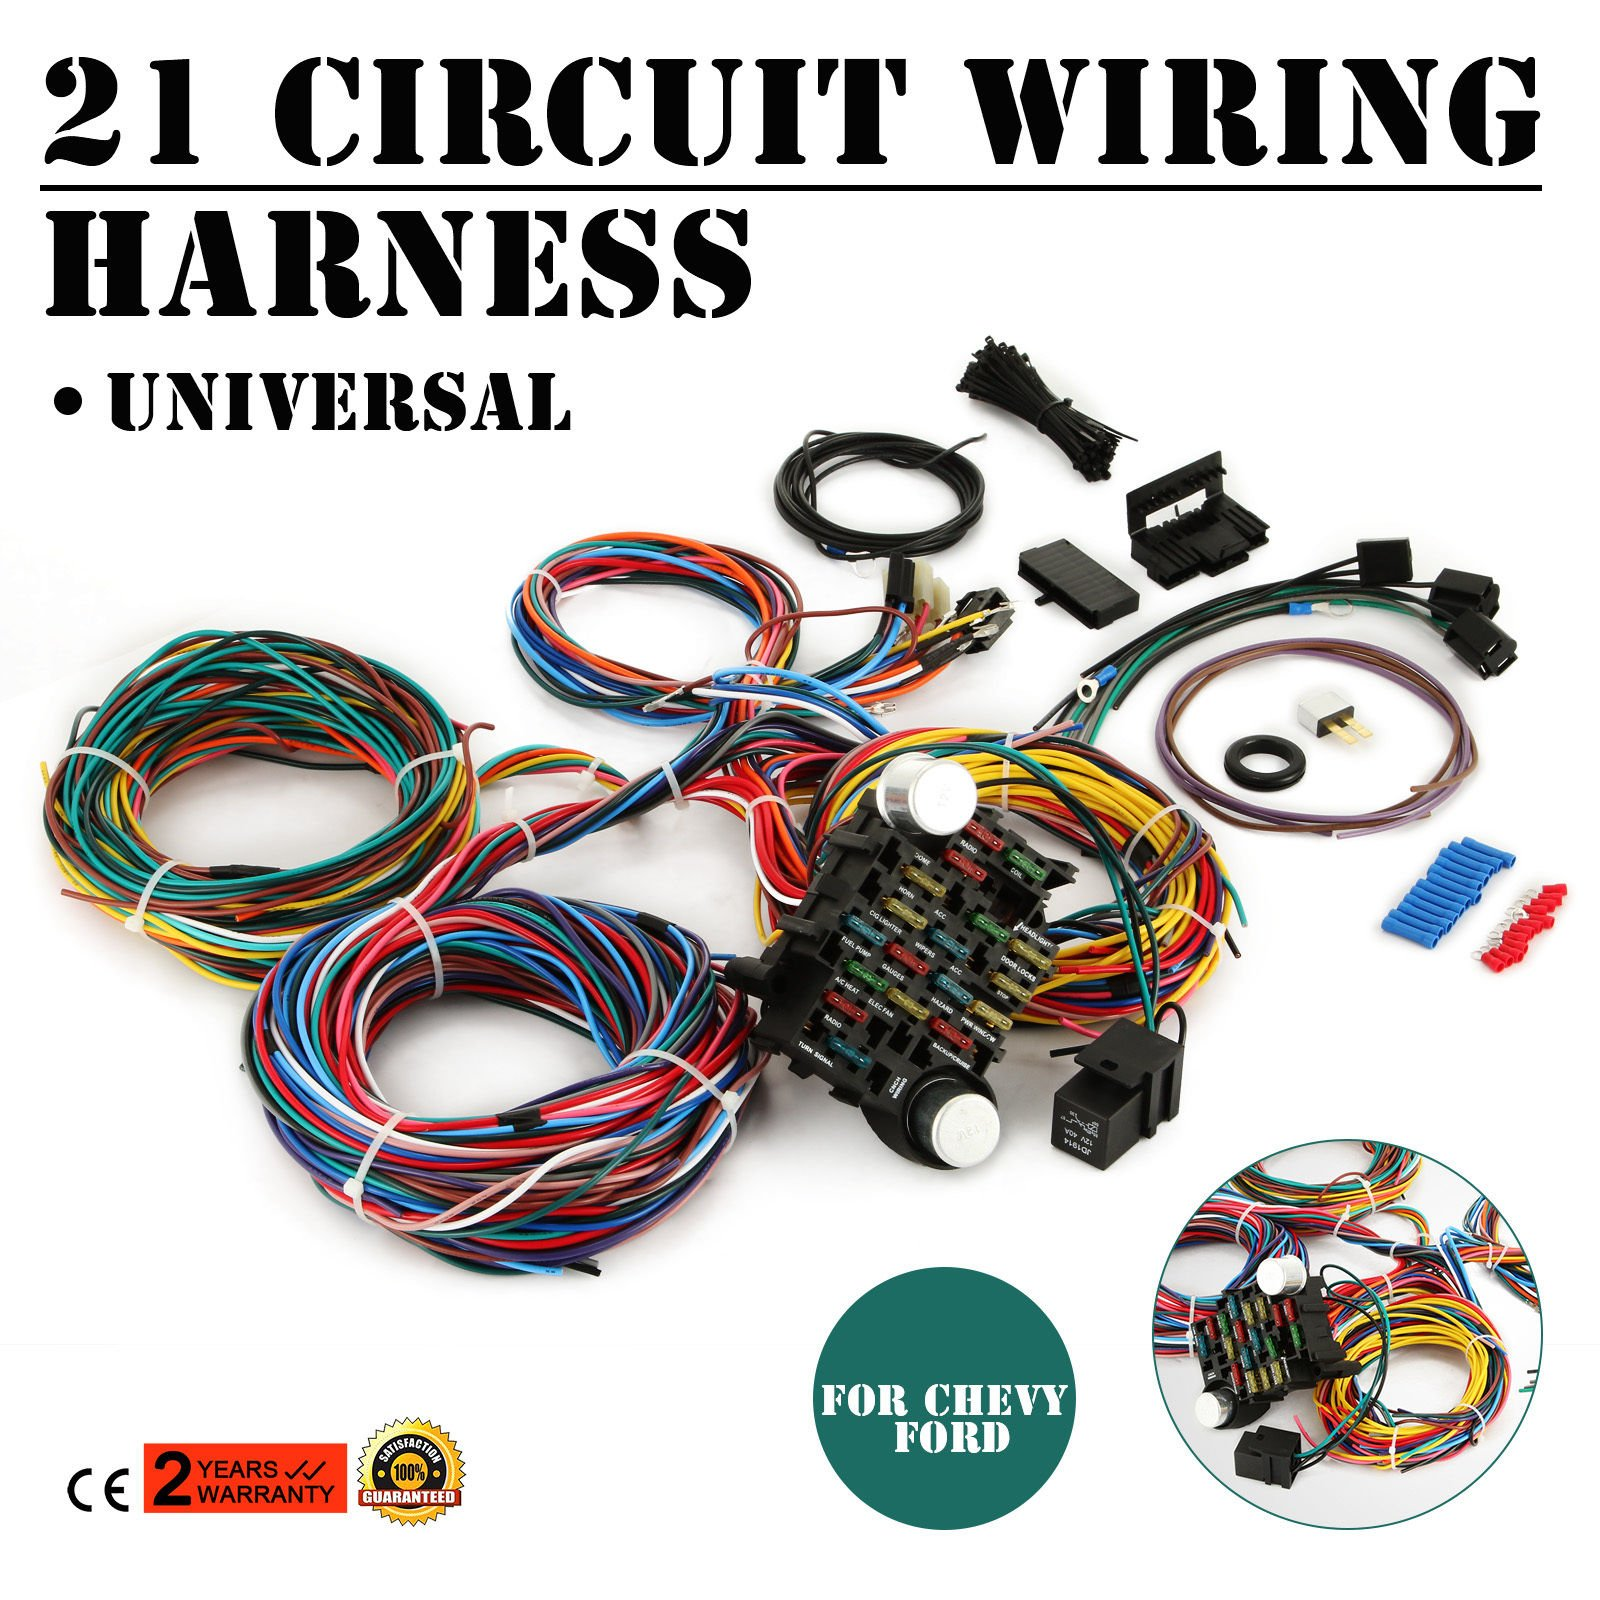 Amazing With Hot Rod Wiring Harness On Painless Wiring Harness For Hot Rod Wiring Cloud Oideiuggs Outletorg